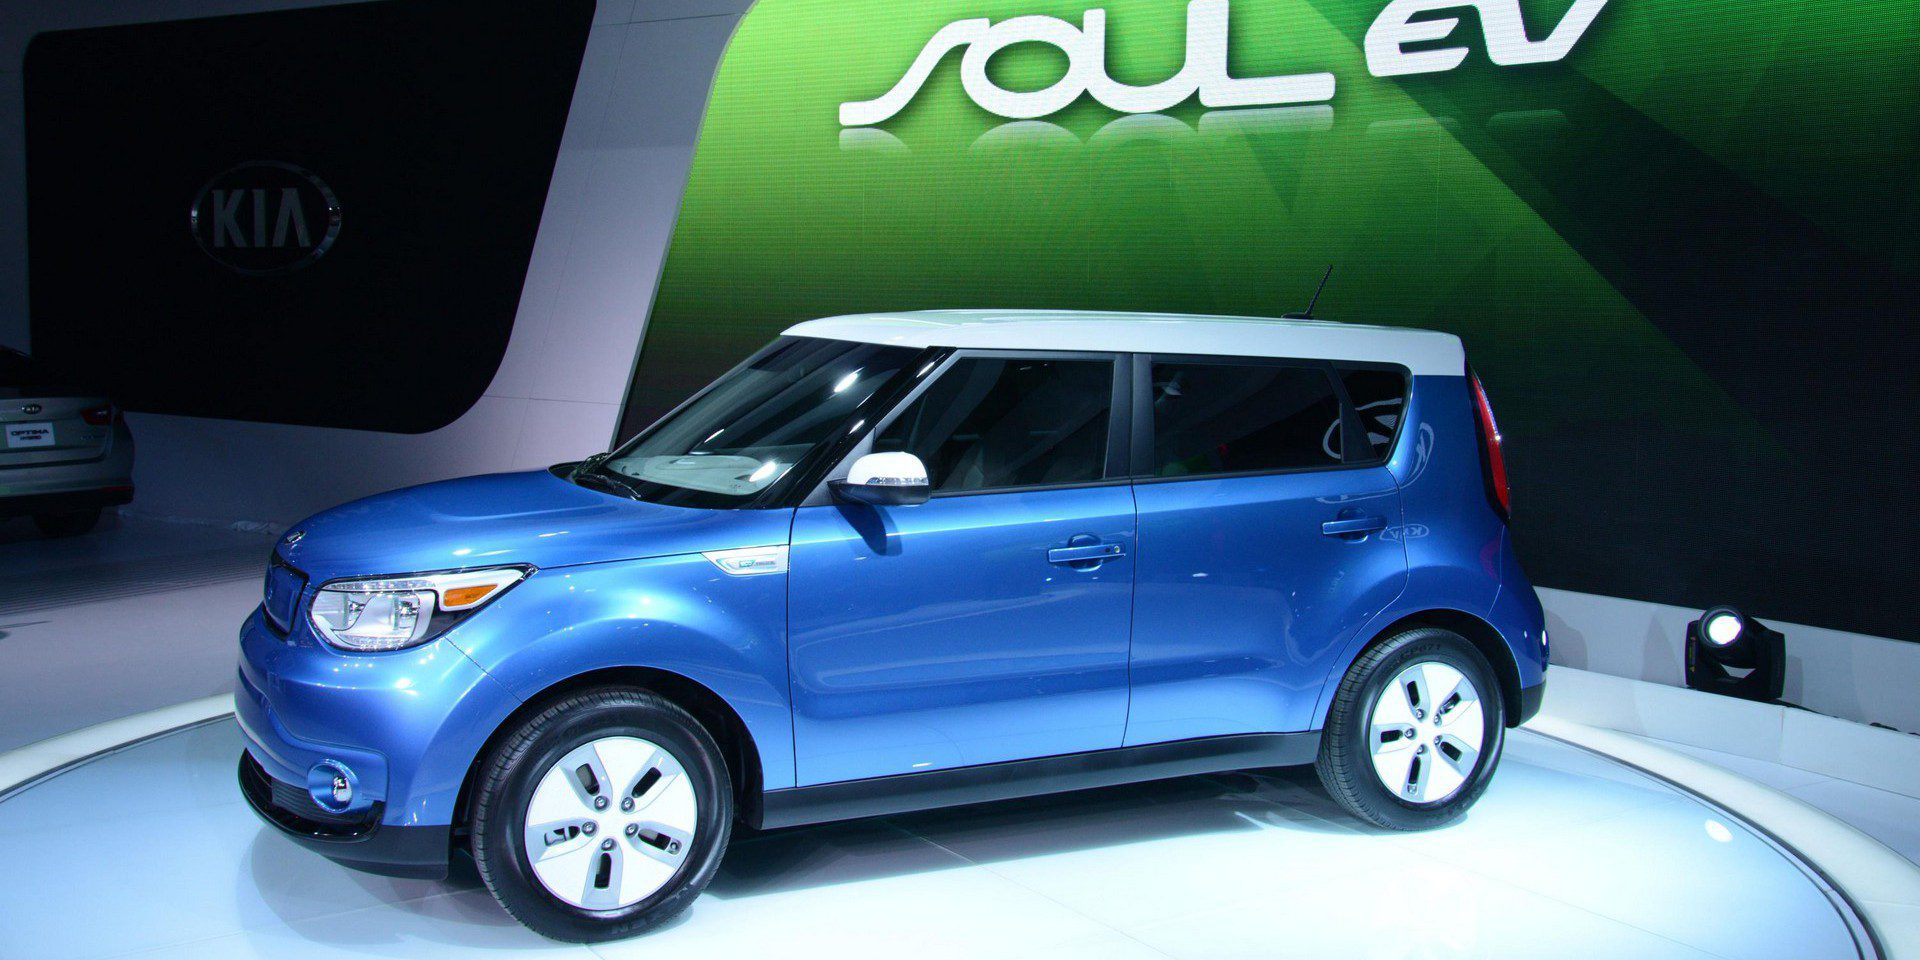 2018 Kia Soul Ev Gets A Battery Upgrade To Bring The Range Over 100 Miles